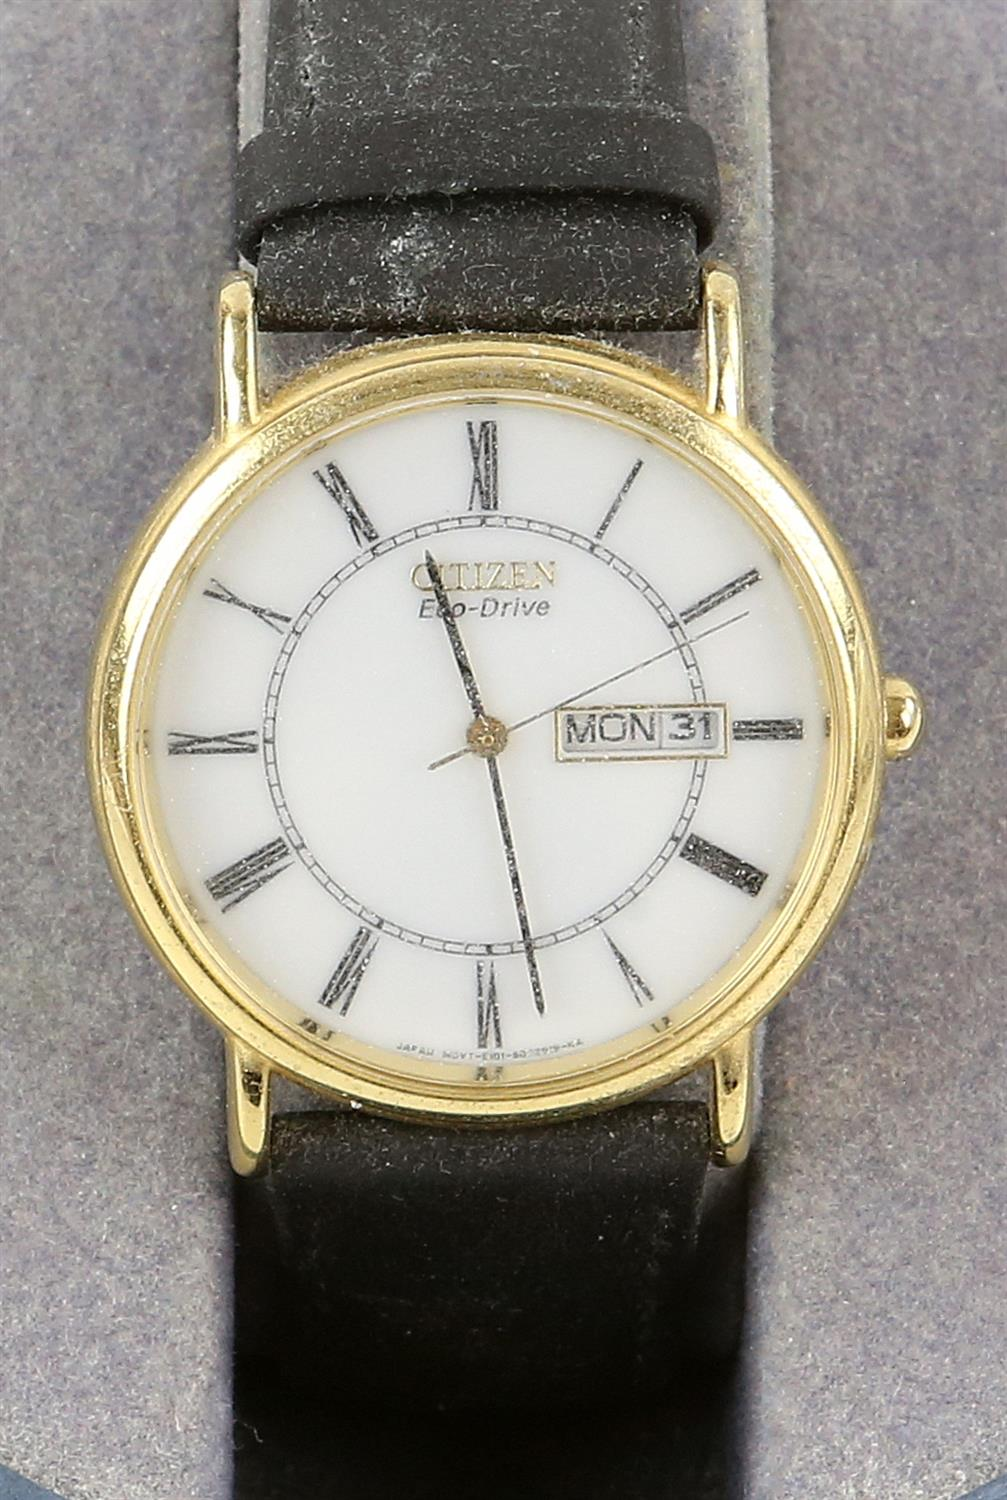 Raymond Weil, A Gentleman's reference 6549 dress watch with white enamel dial, baton hour markers, - Image 9 of 11